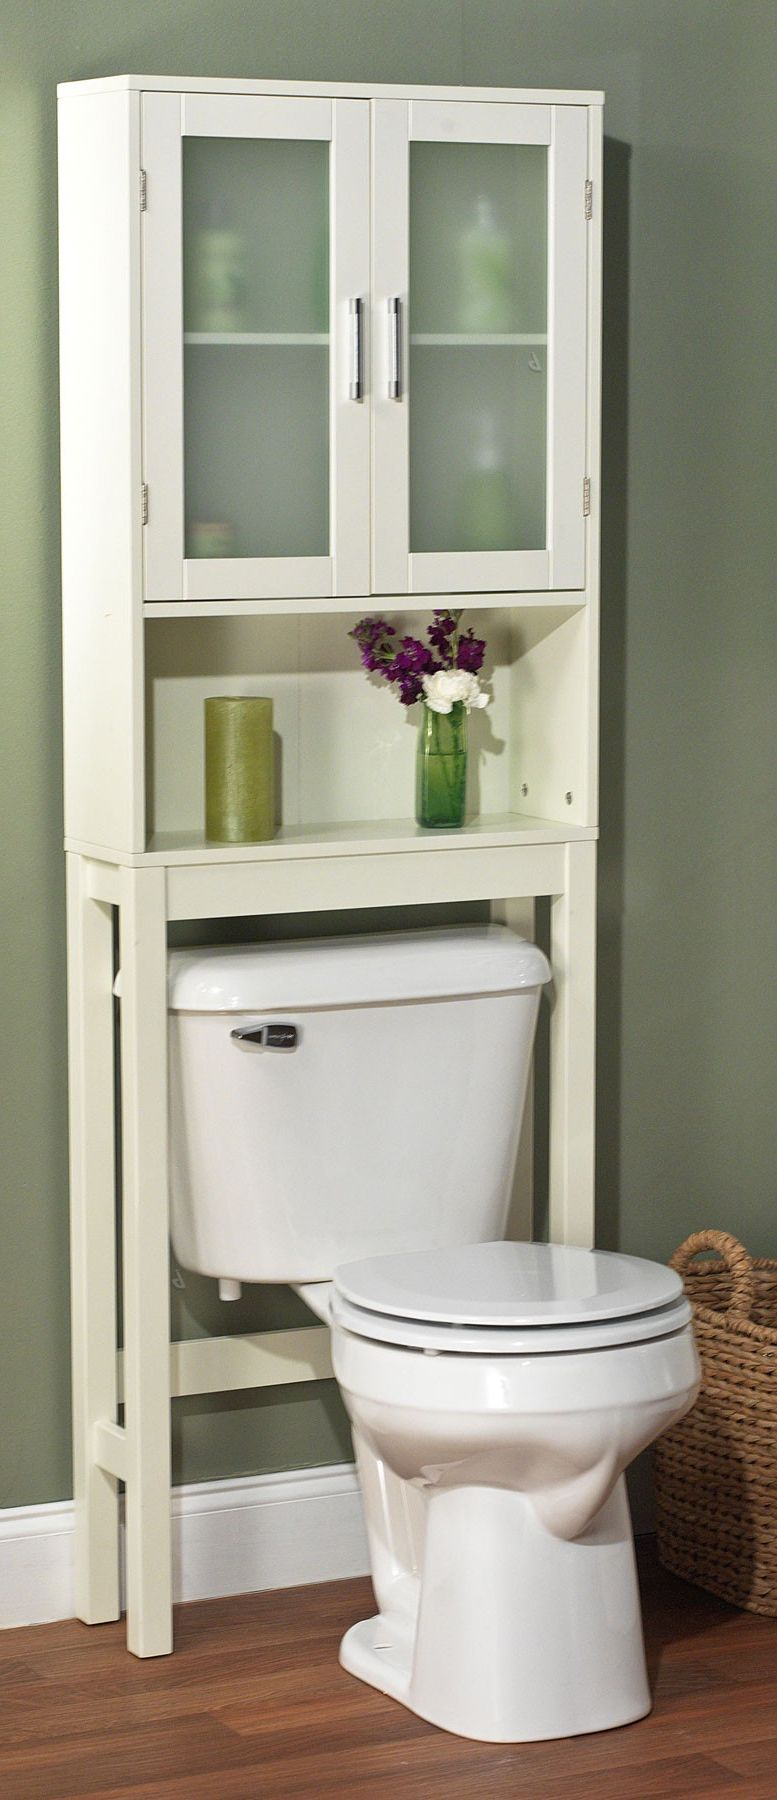 Bathroom space saver // over-toilet cupboard, such a good ... on Nice Bathroom Designs For Small Spaces  id=50475